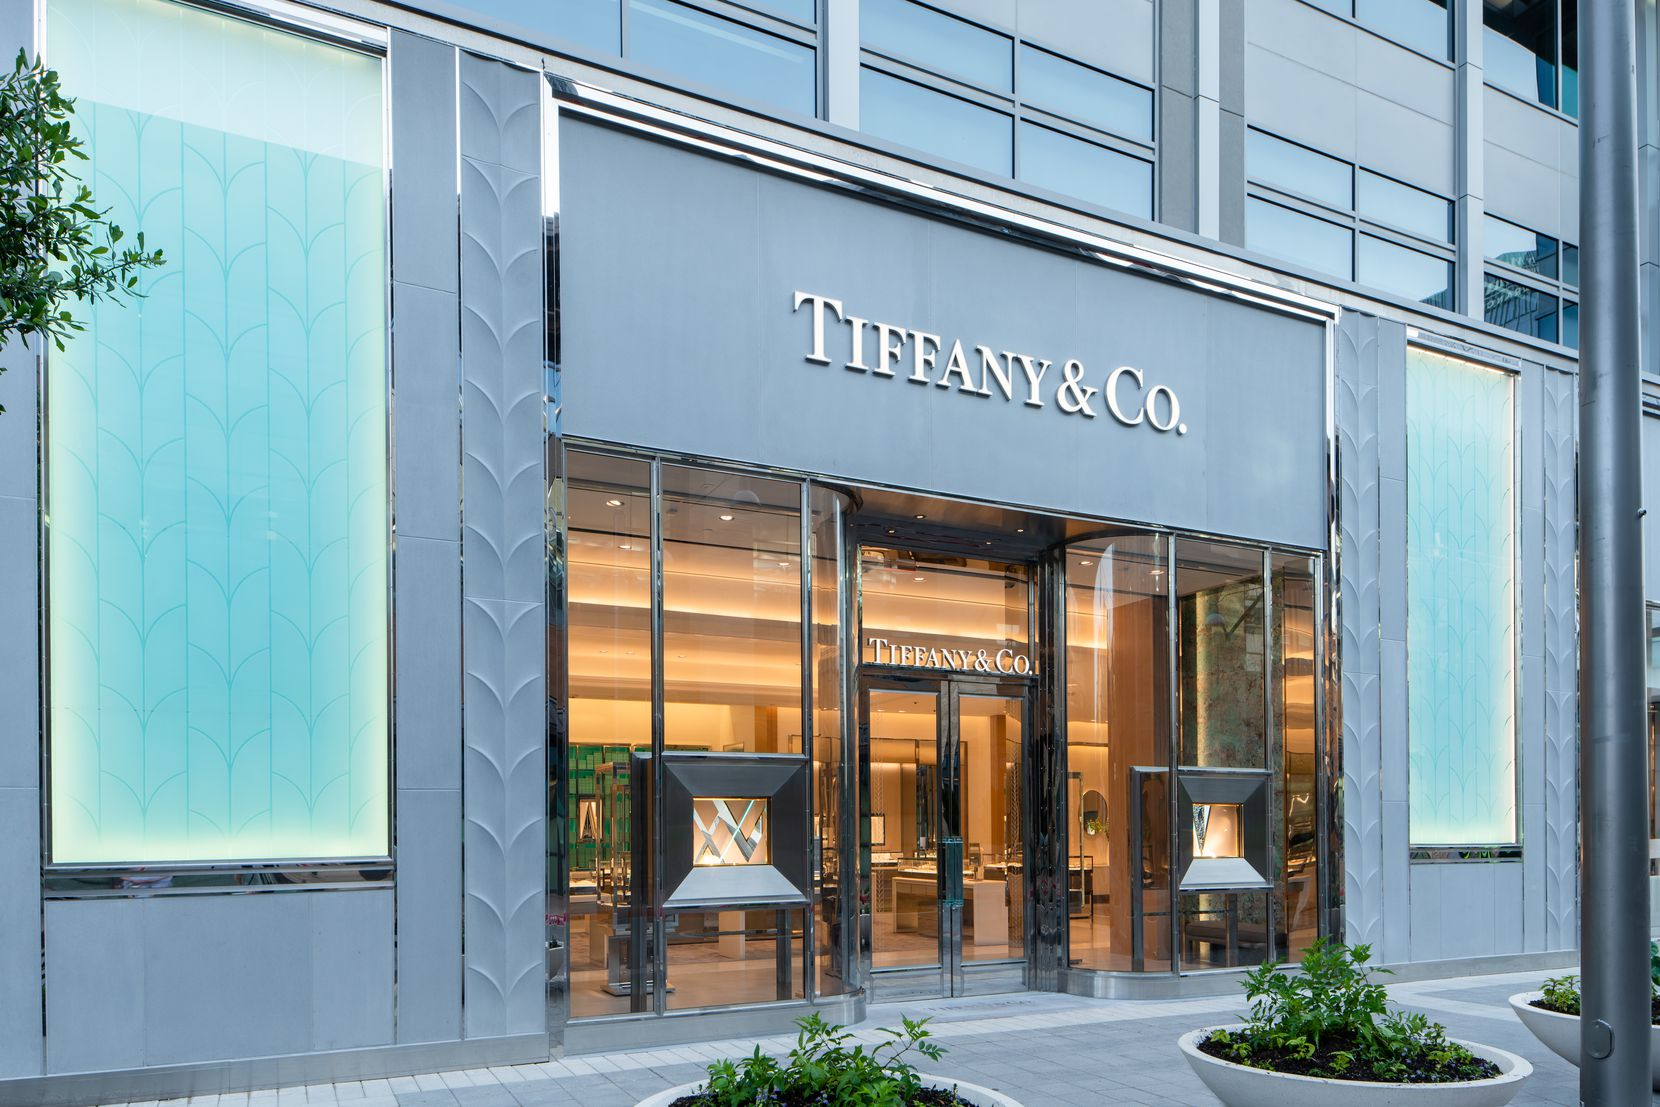 Exterior of the new Tiffany & Co. store in Plano's Legacy West.